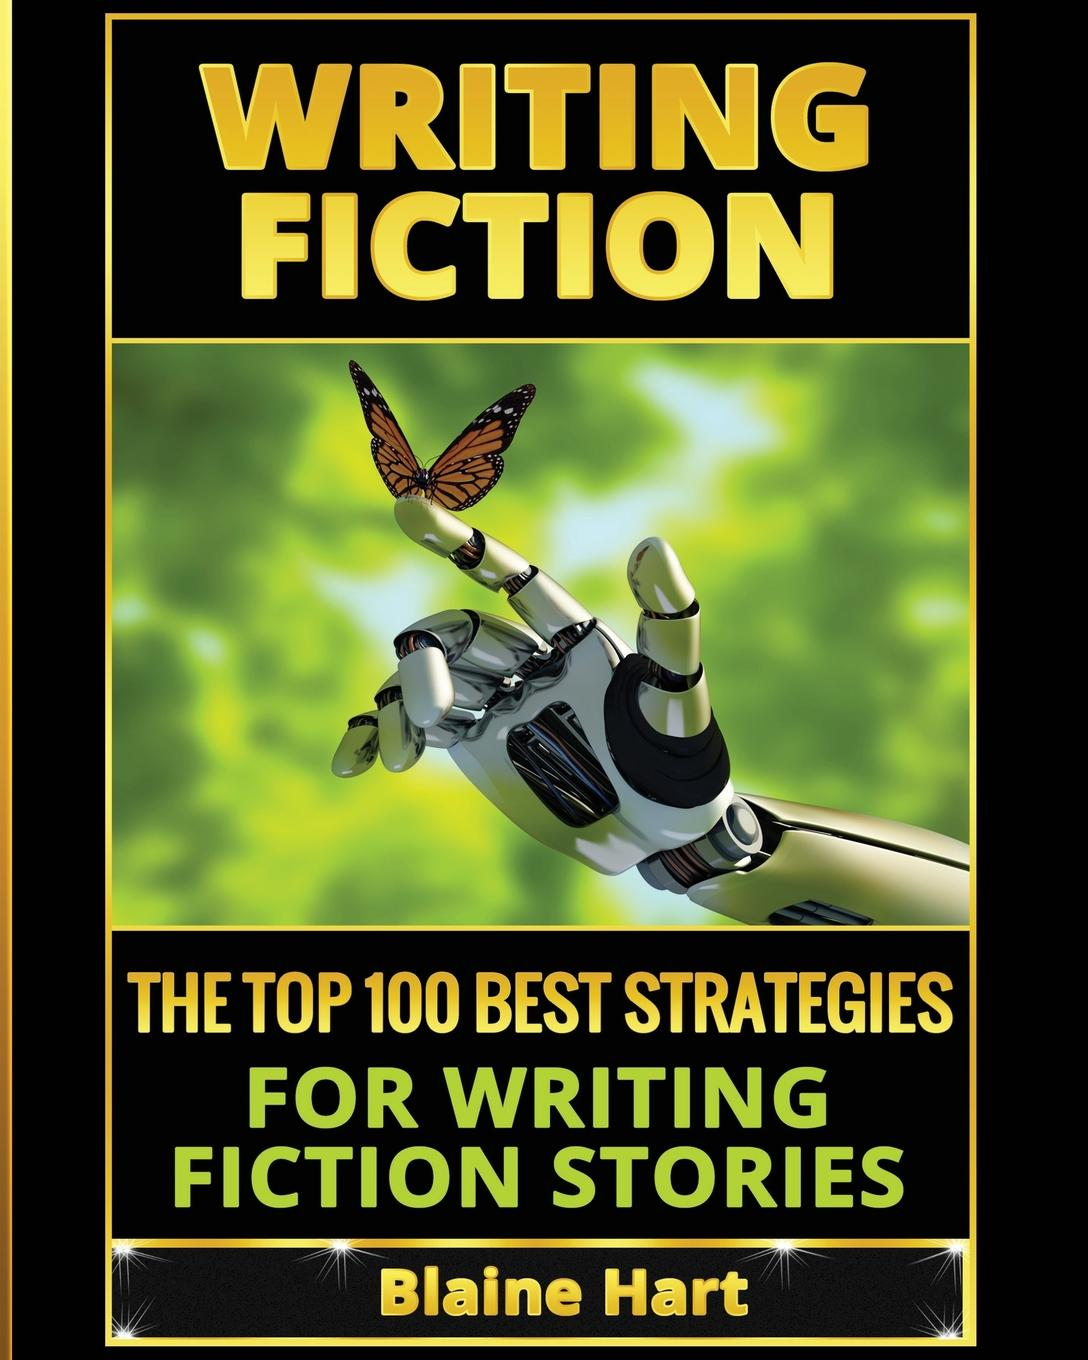 Blaine Hart Writing Fiction. The Top 100 Best Strategies For Writing Fiction Stories michael roberto a unlocking creativity how to solve any problem and make the best decisions by shifting creative mindsets